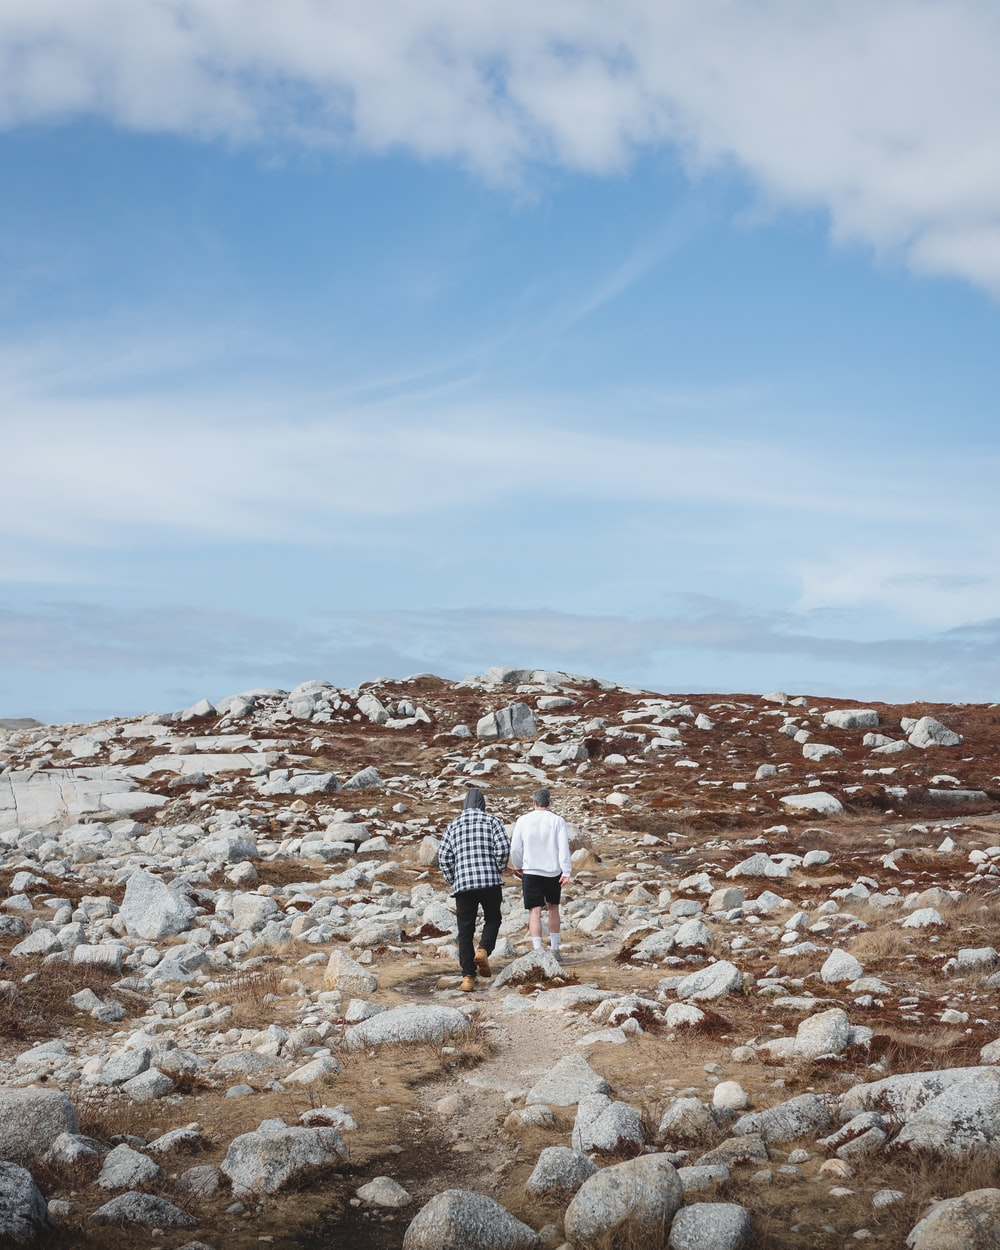 man and woman walking on rocky hill under blue sky during daytime